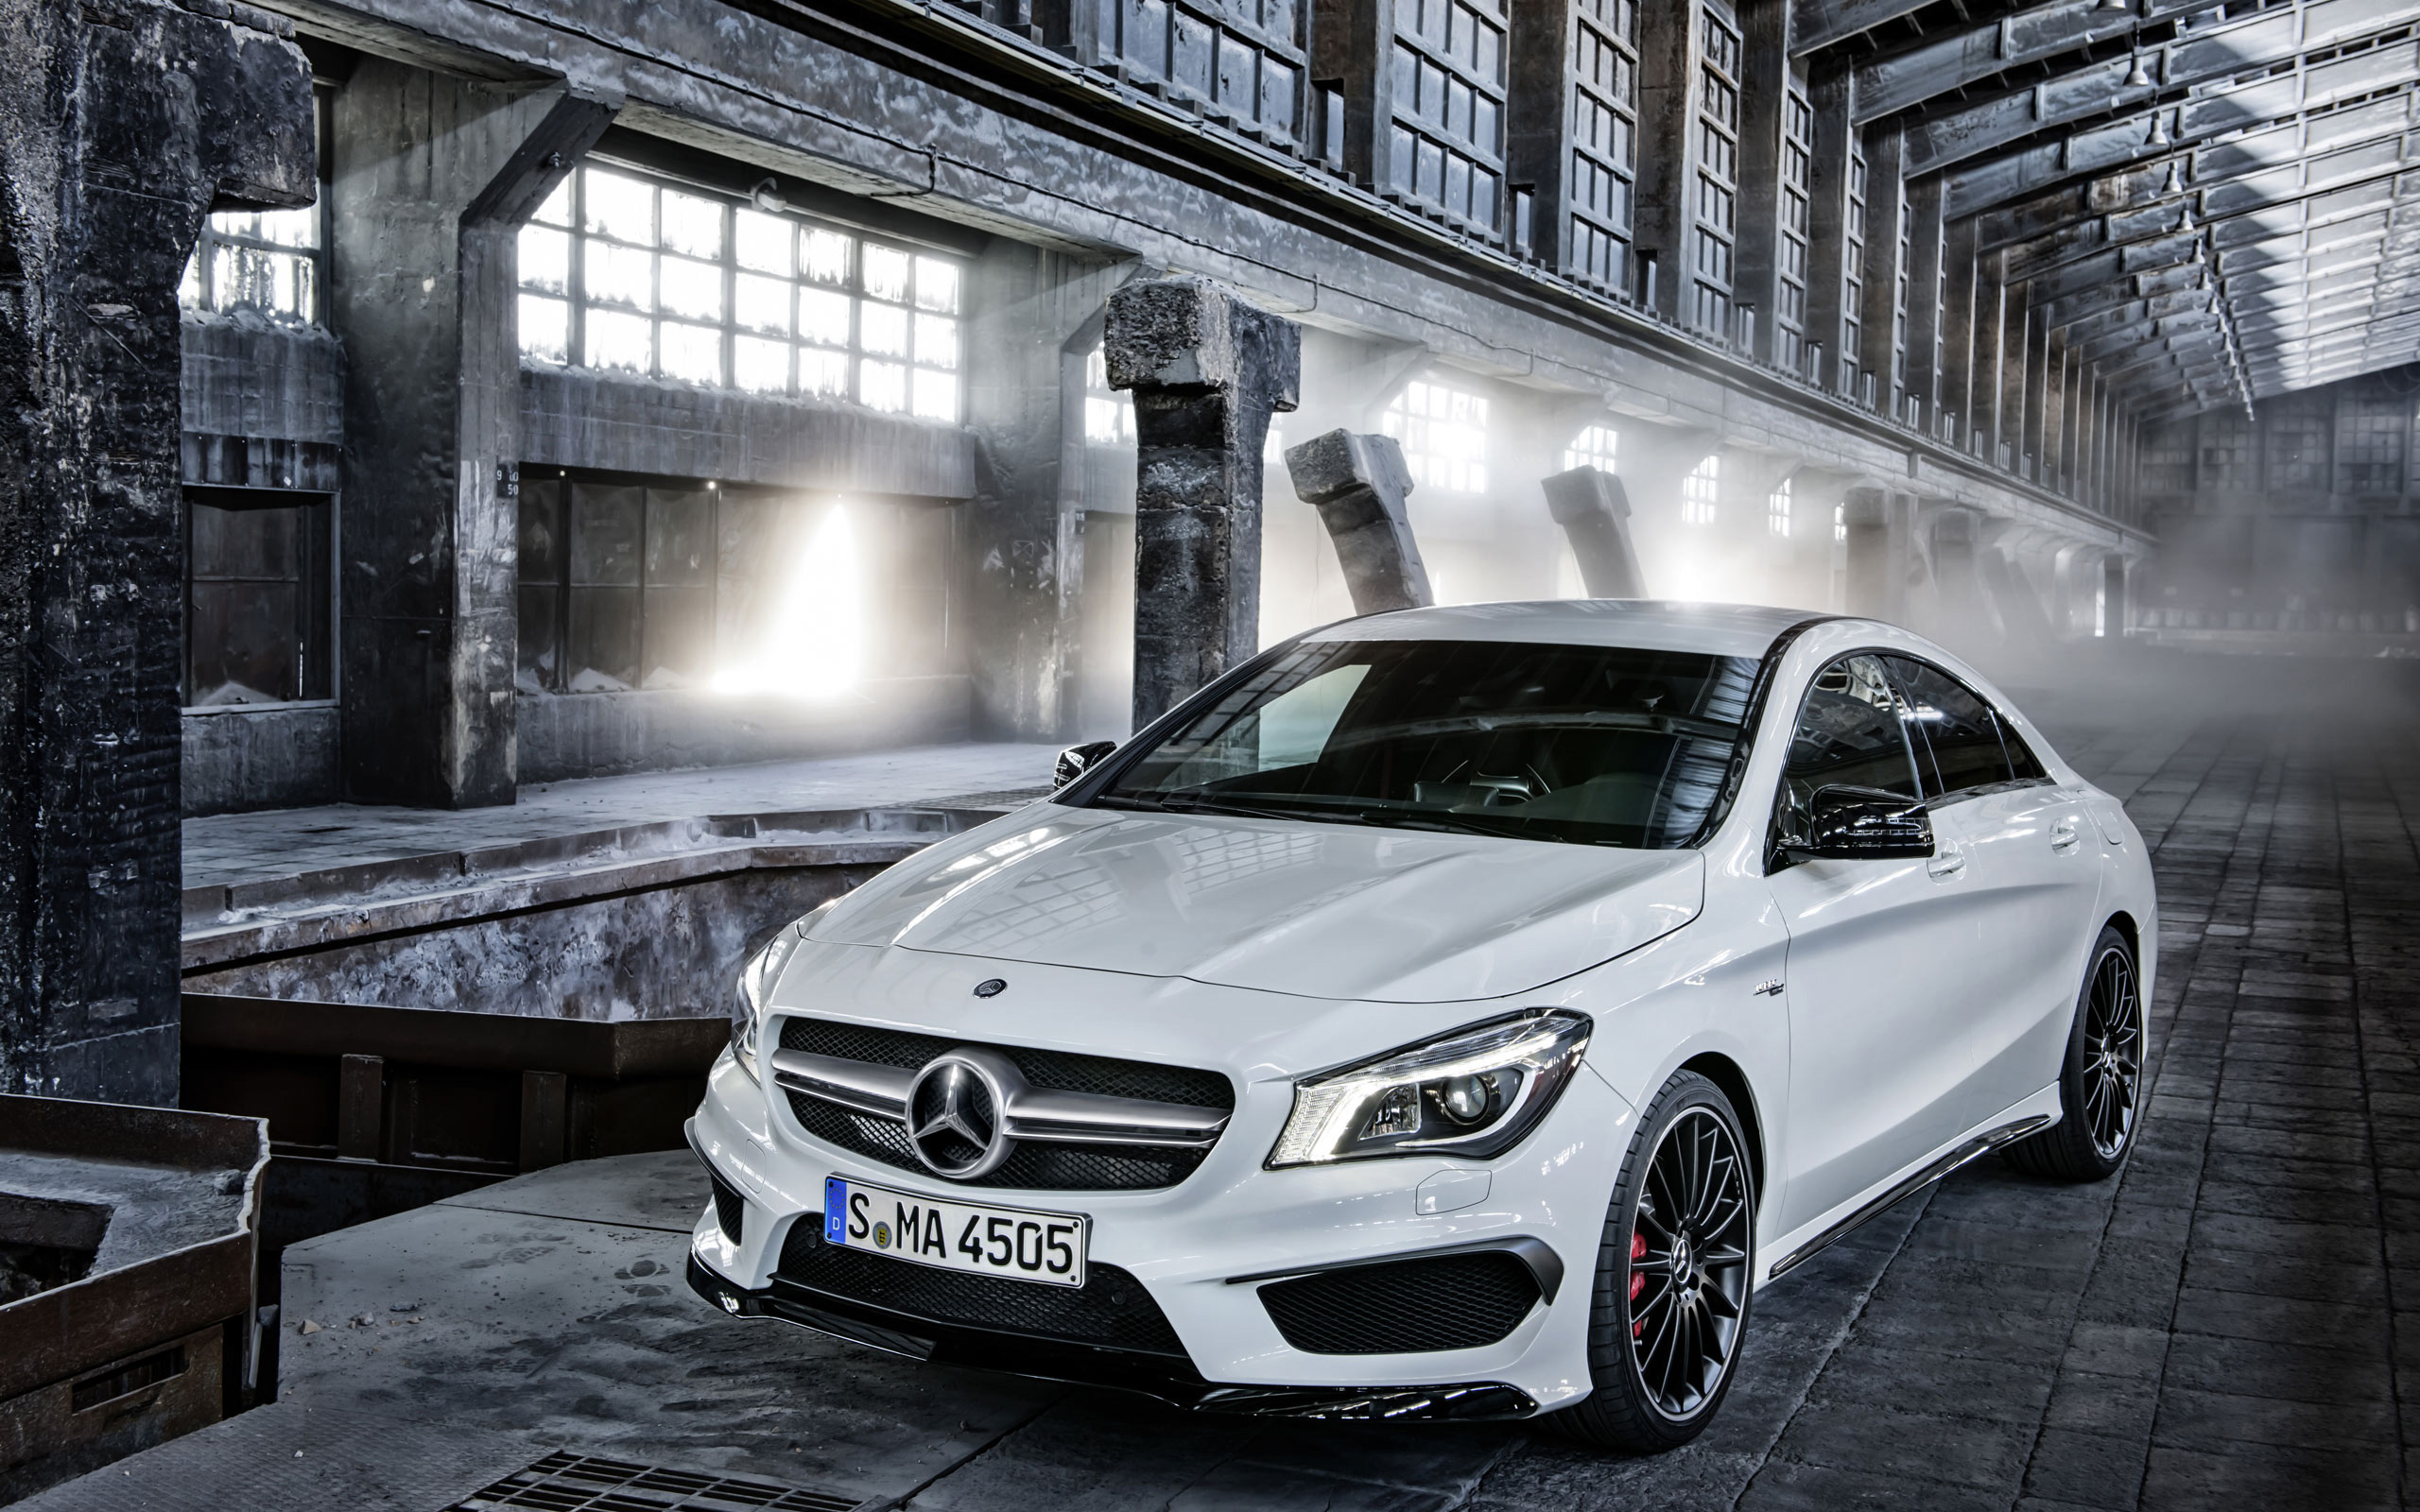 2014 mercedes benz cla45 amg wallpaper hd car wallpapers. Black Bedroom Furniture Sets. Home Design Ideas